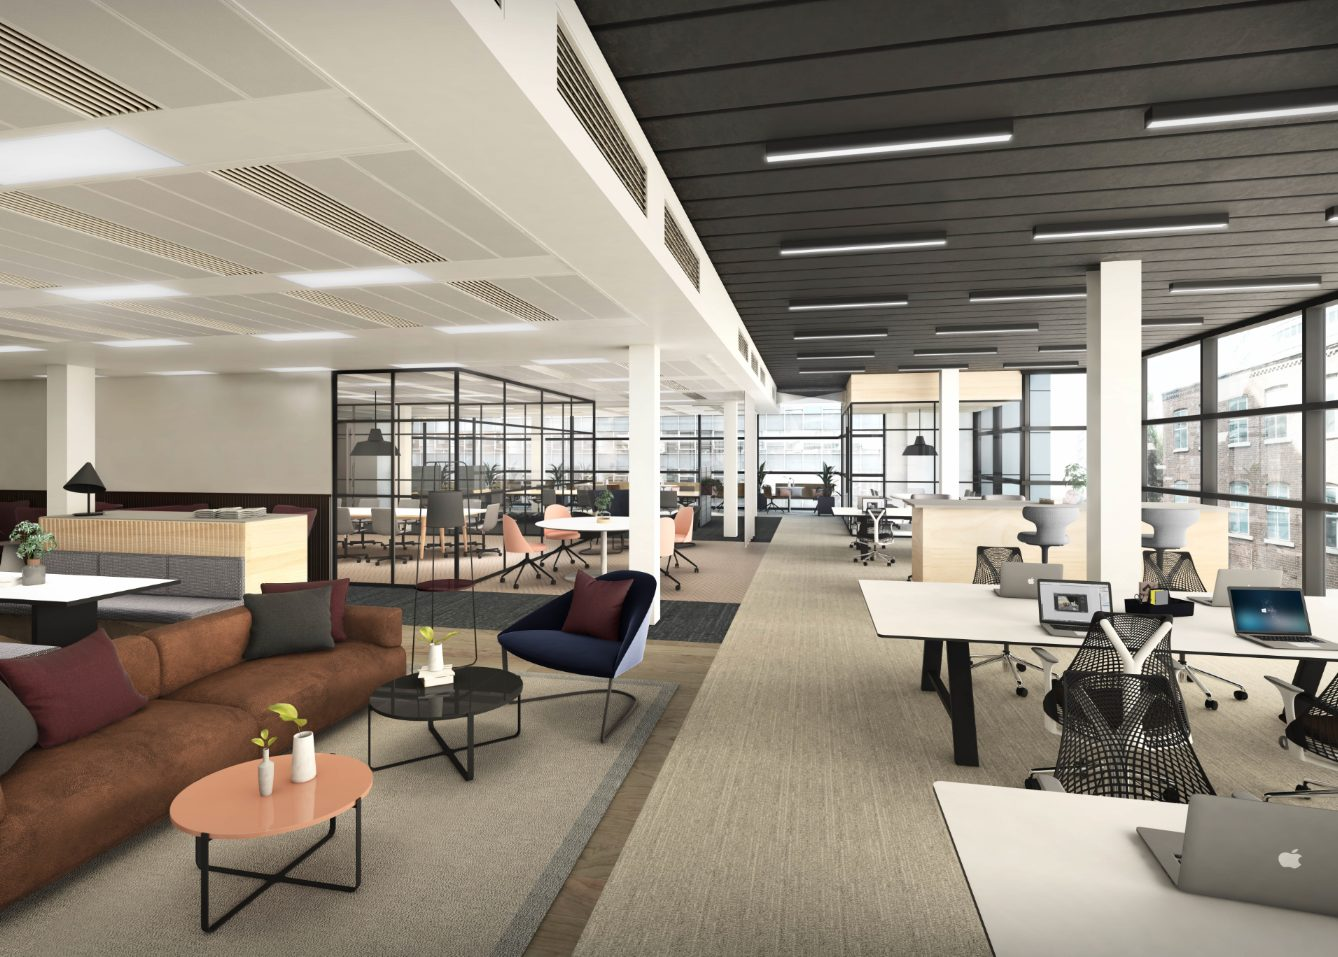 Ardmac to Deliver High Quality Fit Out at Bauhaus